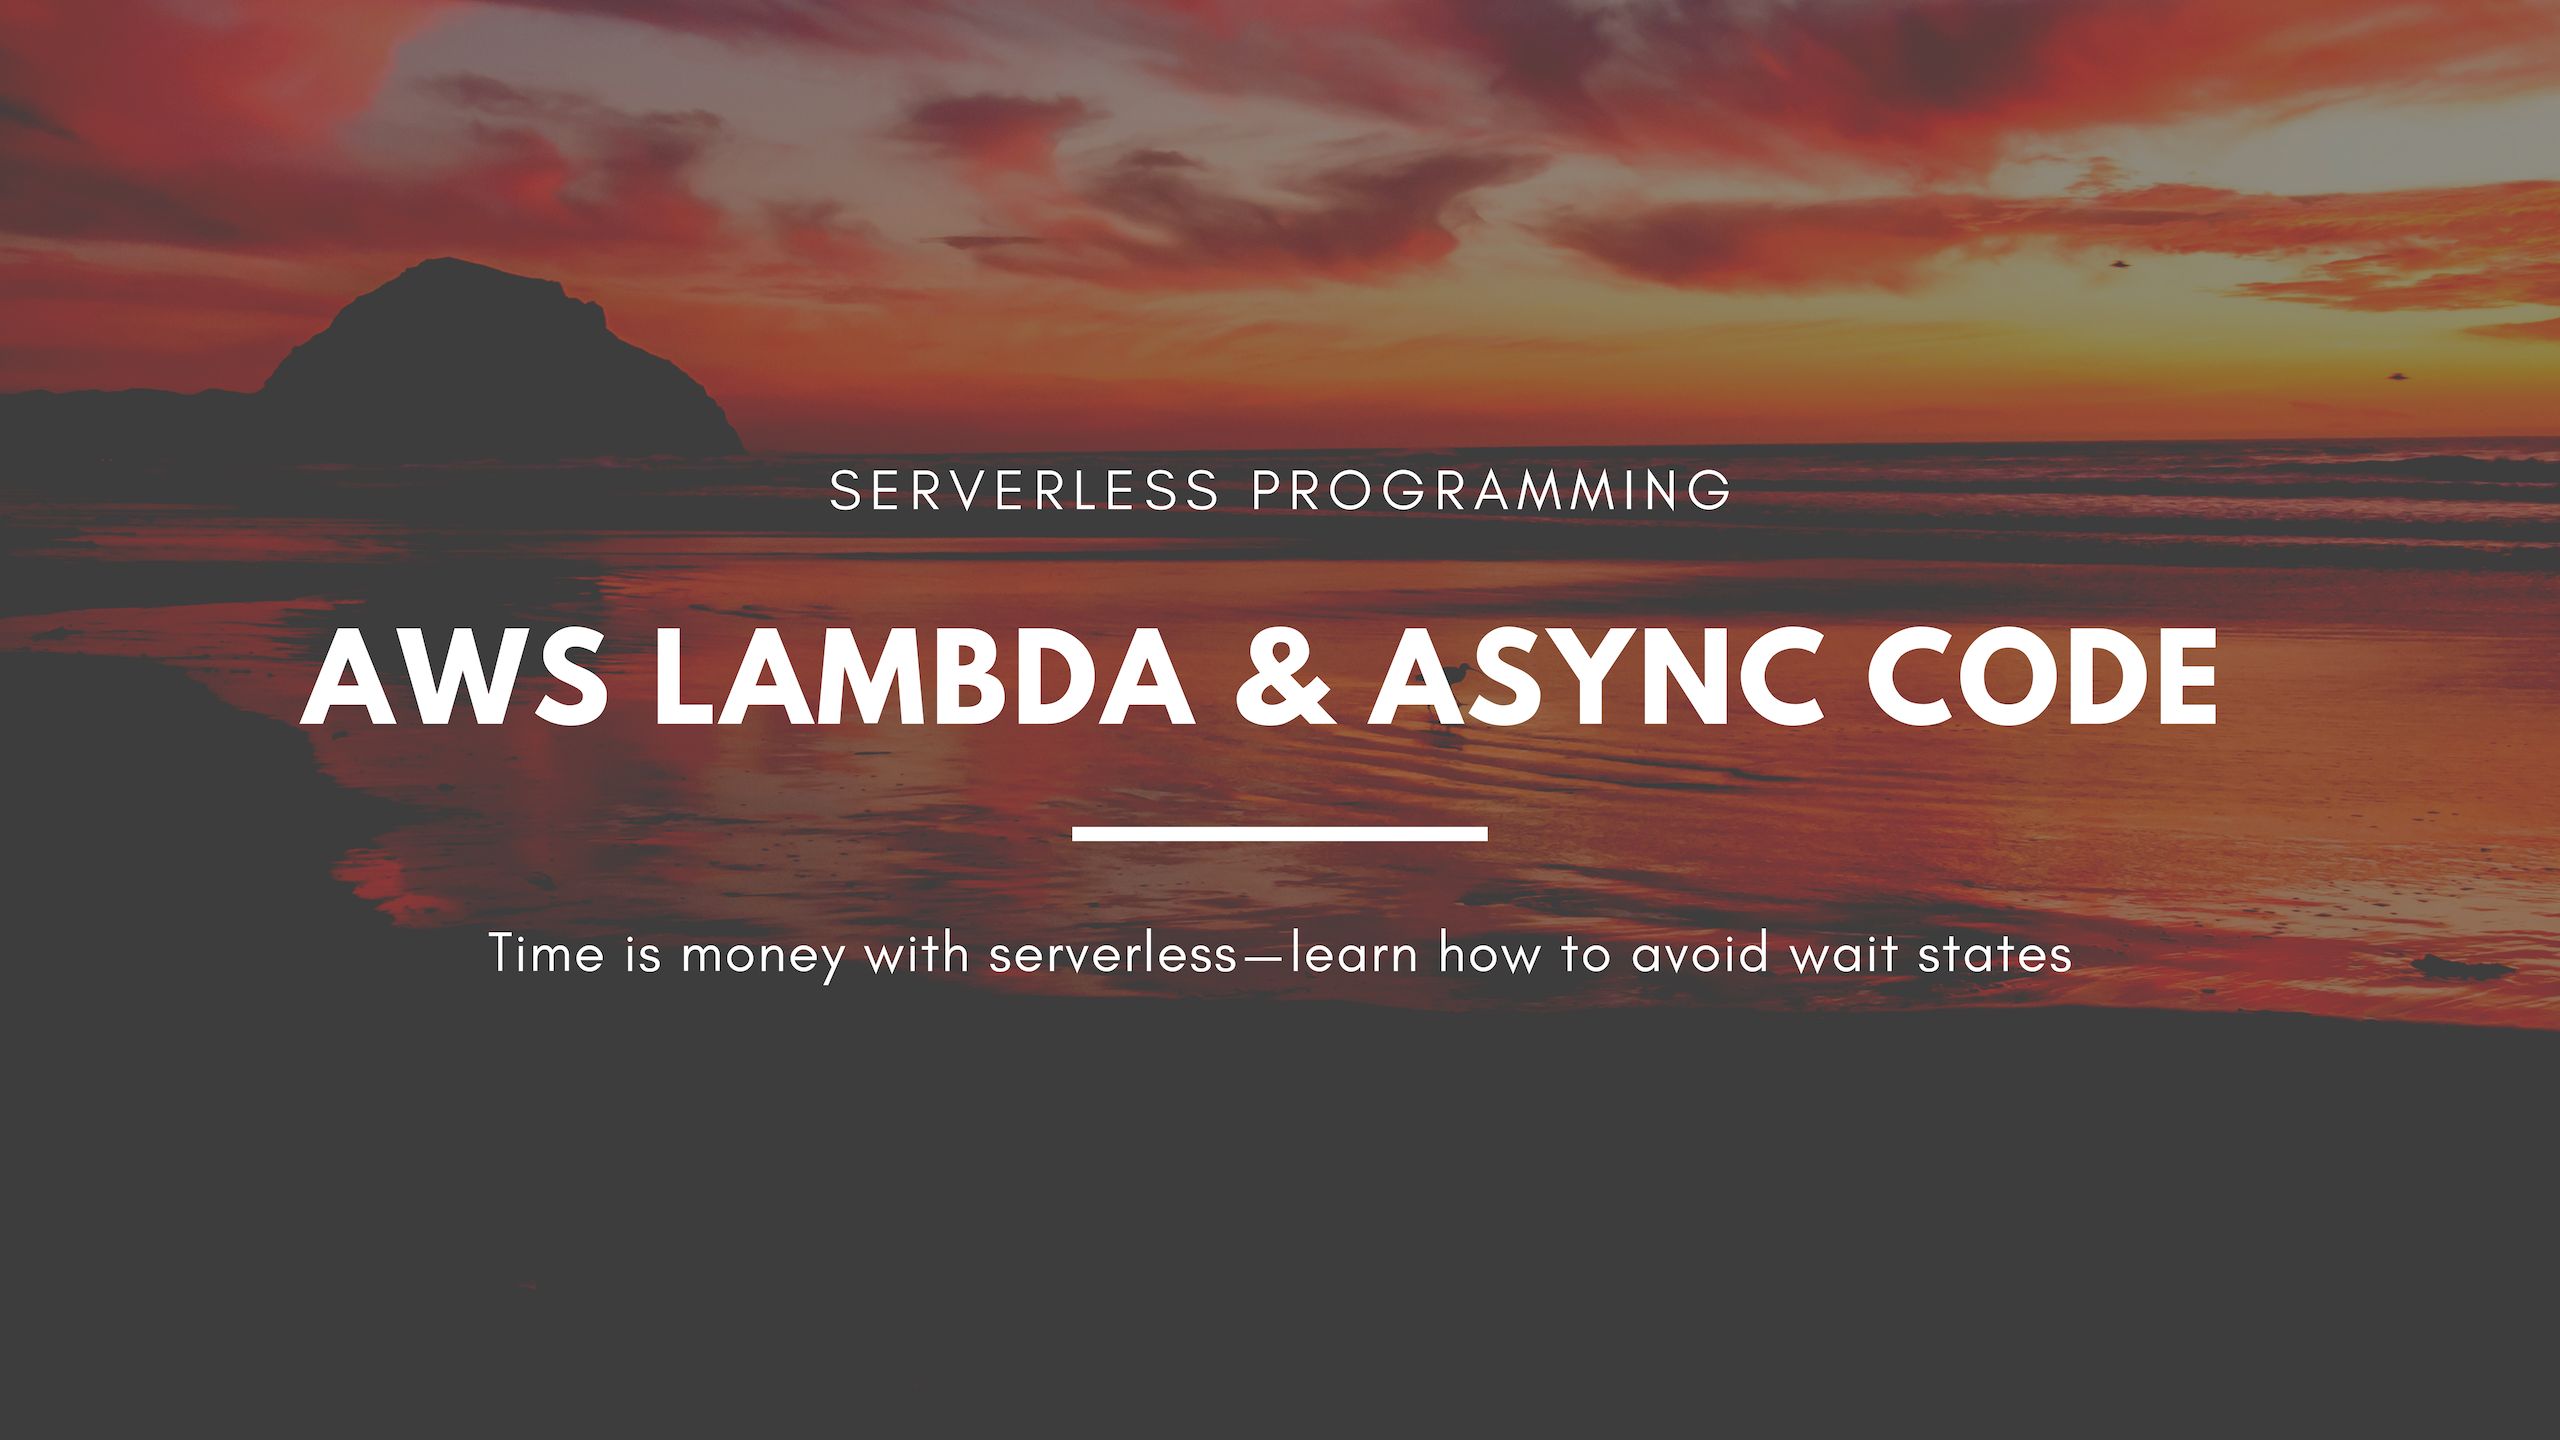 Save time and money with AWS Lambda using asynchronous programming